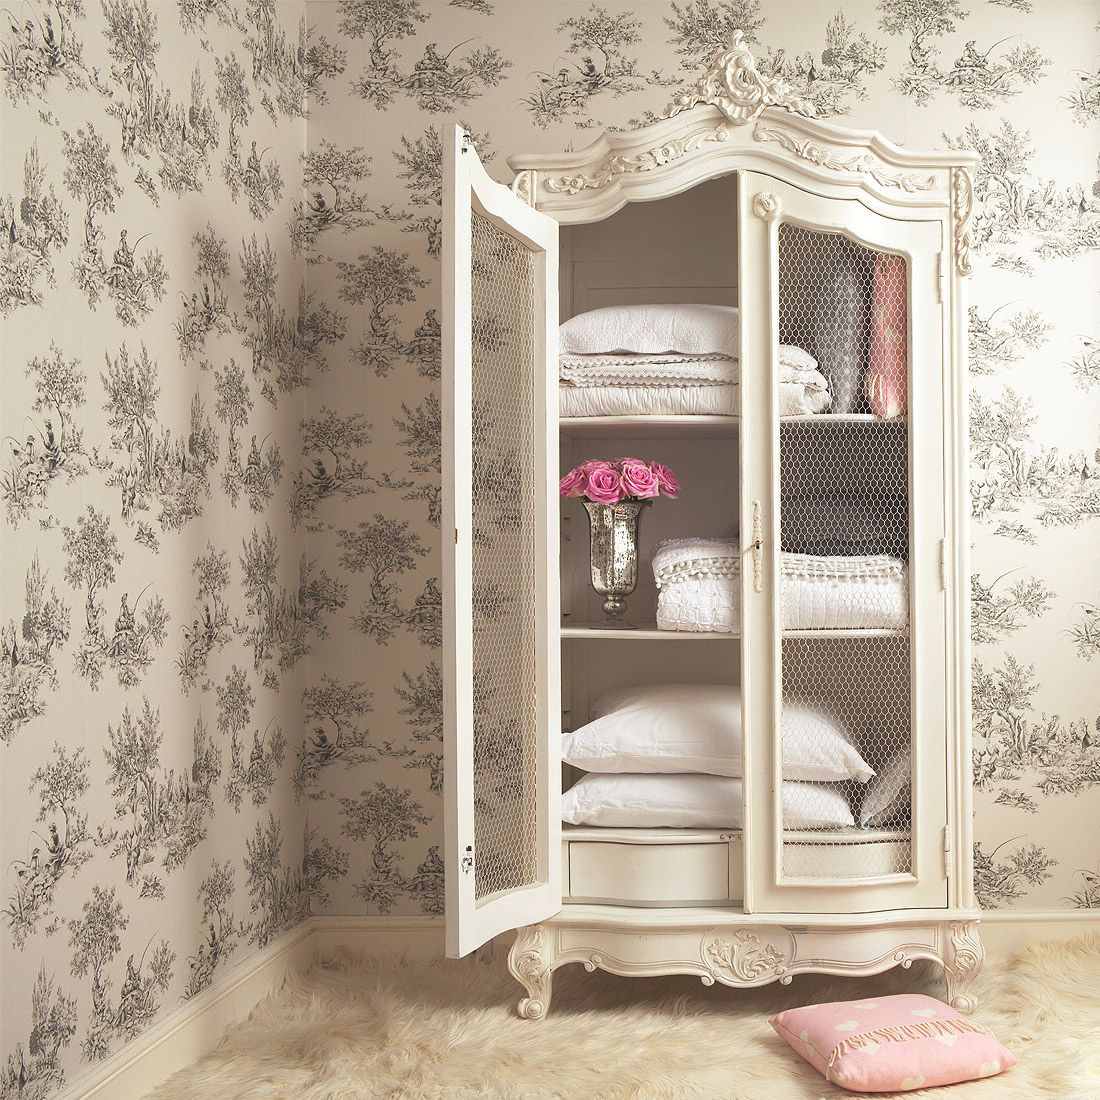 shabby chic bedroom decorating ideas crypto newscom - Shabby Chic Bedroom Decorating Ideas